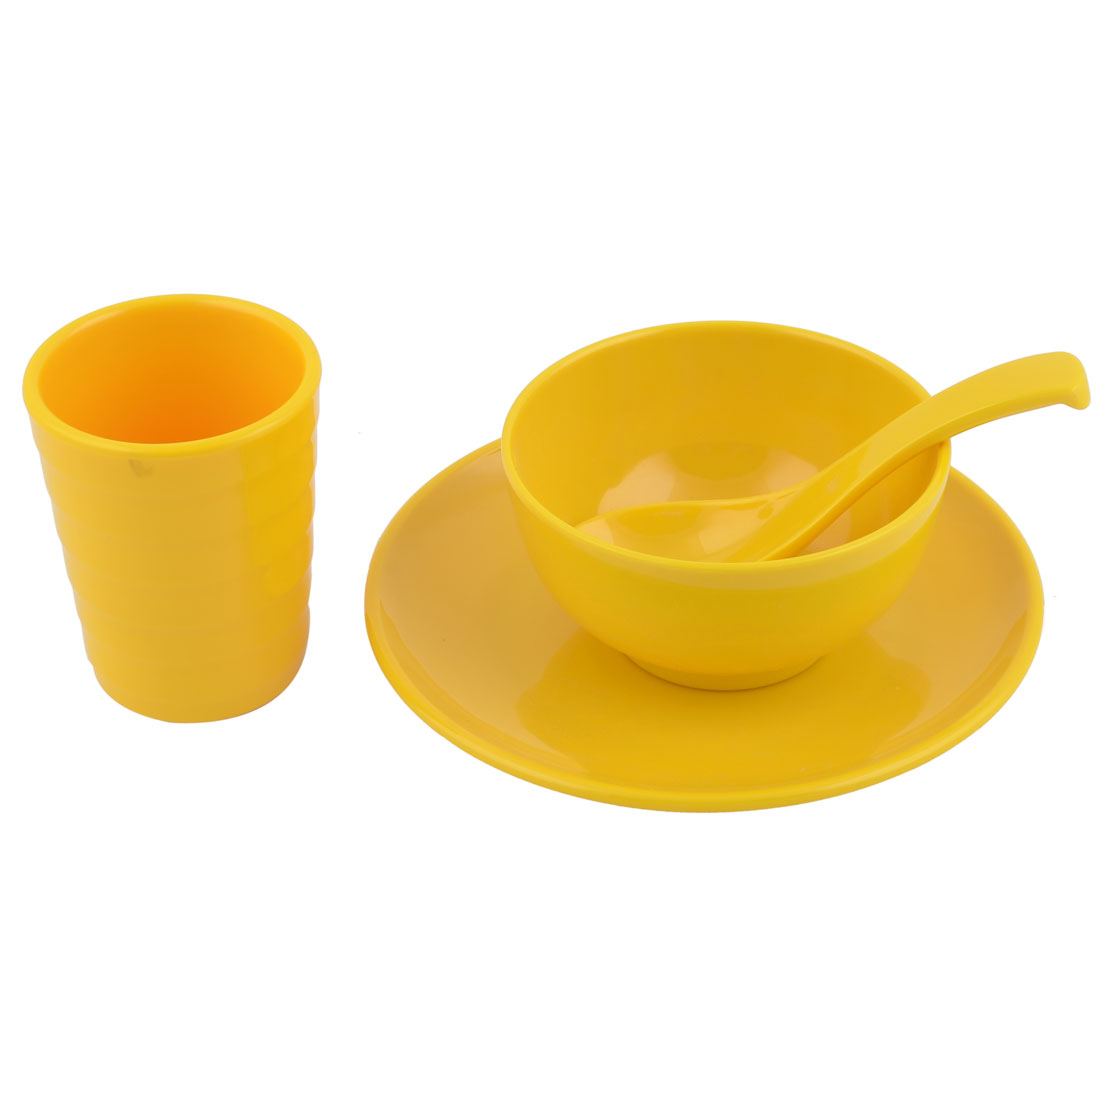 Hotel Restaurant Plastic Dinnerware Tableware Cup Spoon Bowl Plate Yellow 4 in 1